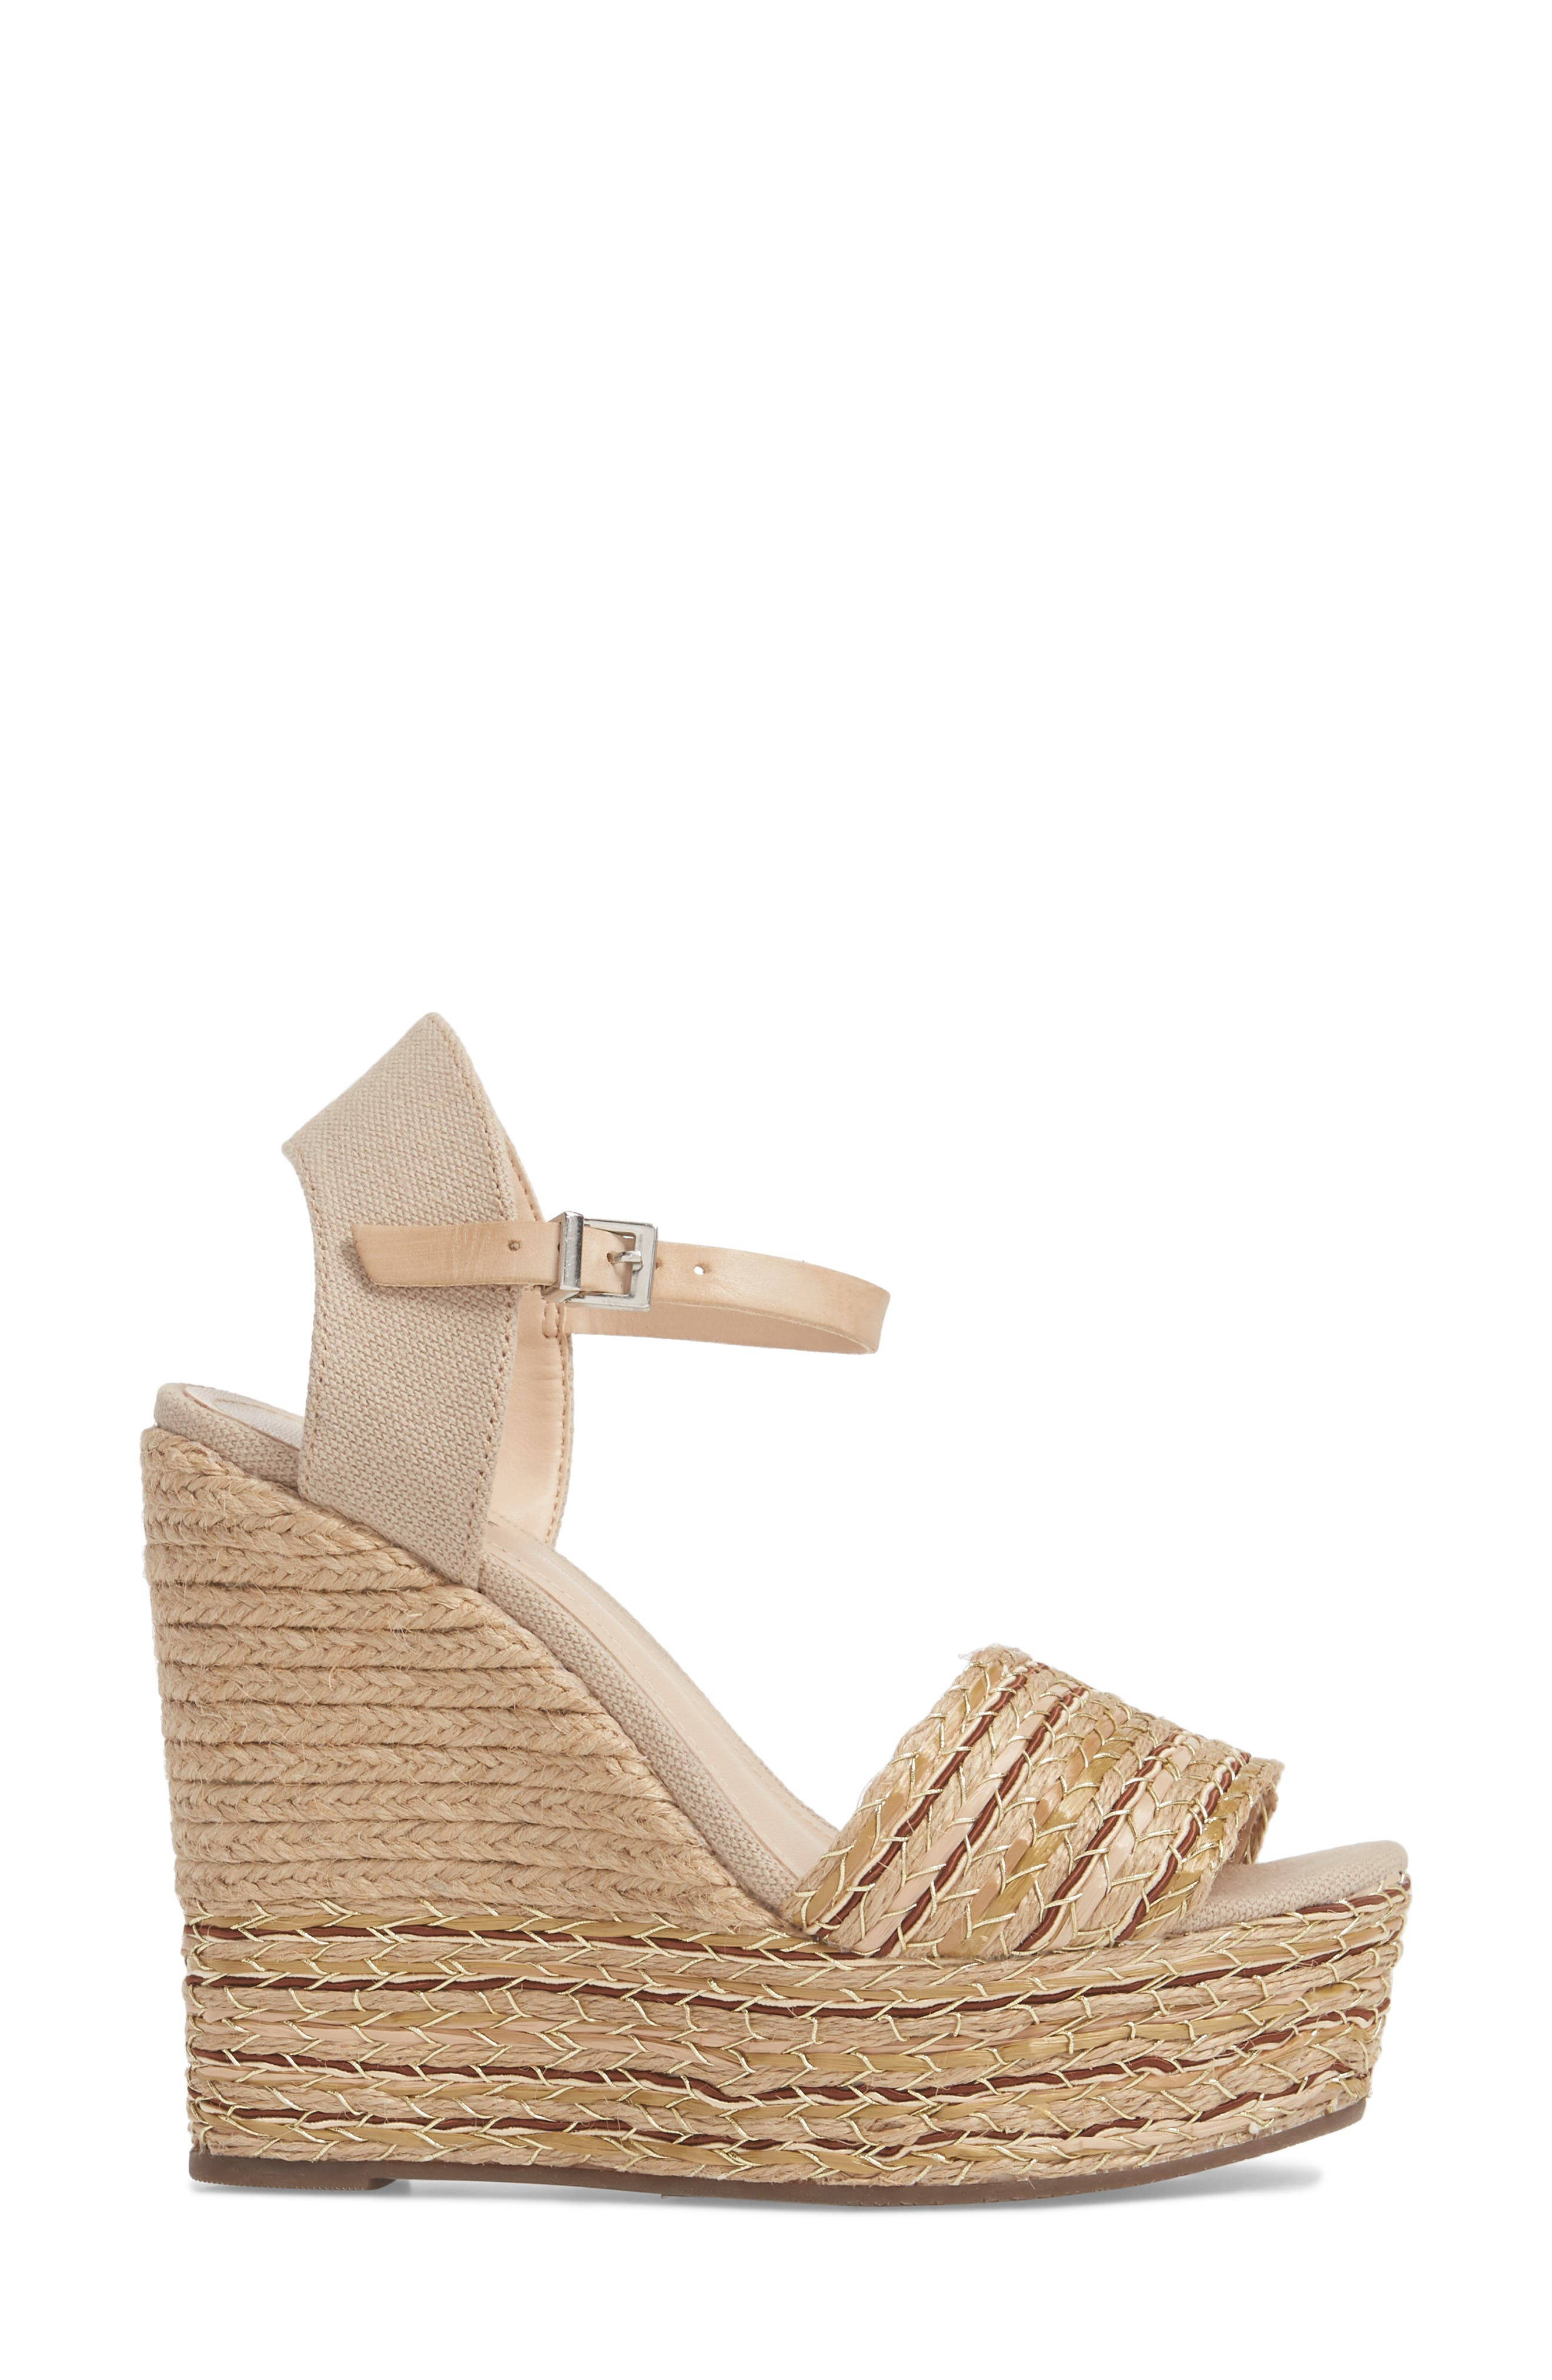 Rilark Platform Wedge Sandal,                             Alternate thumbnail 3, color,                             Coco Fabric